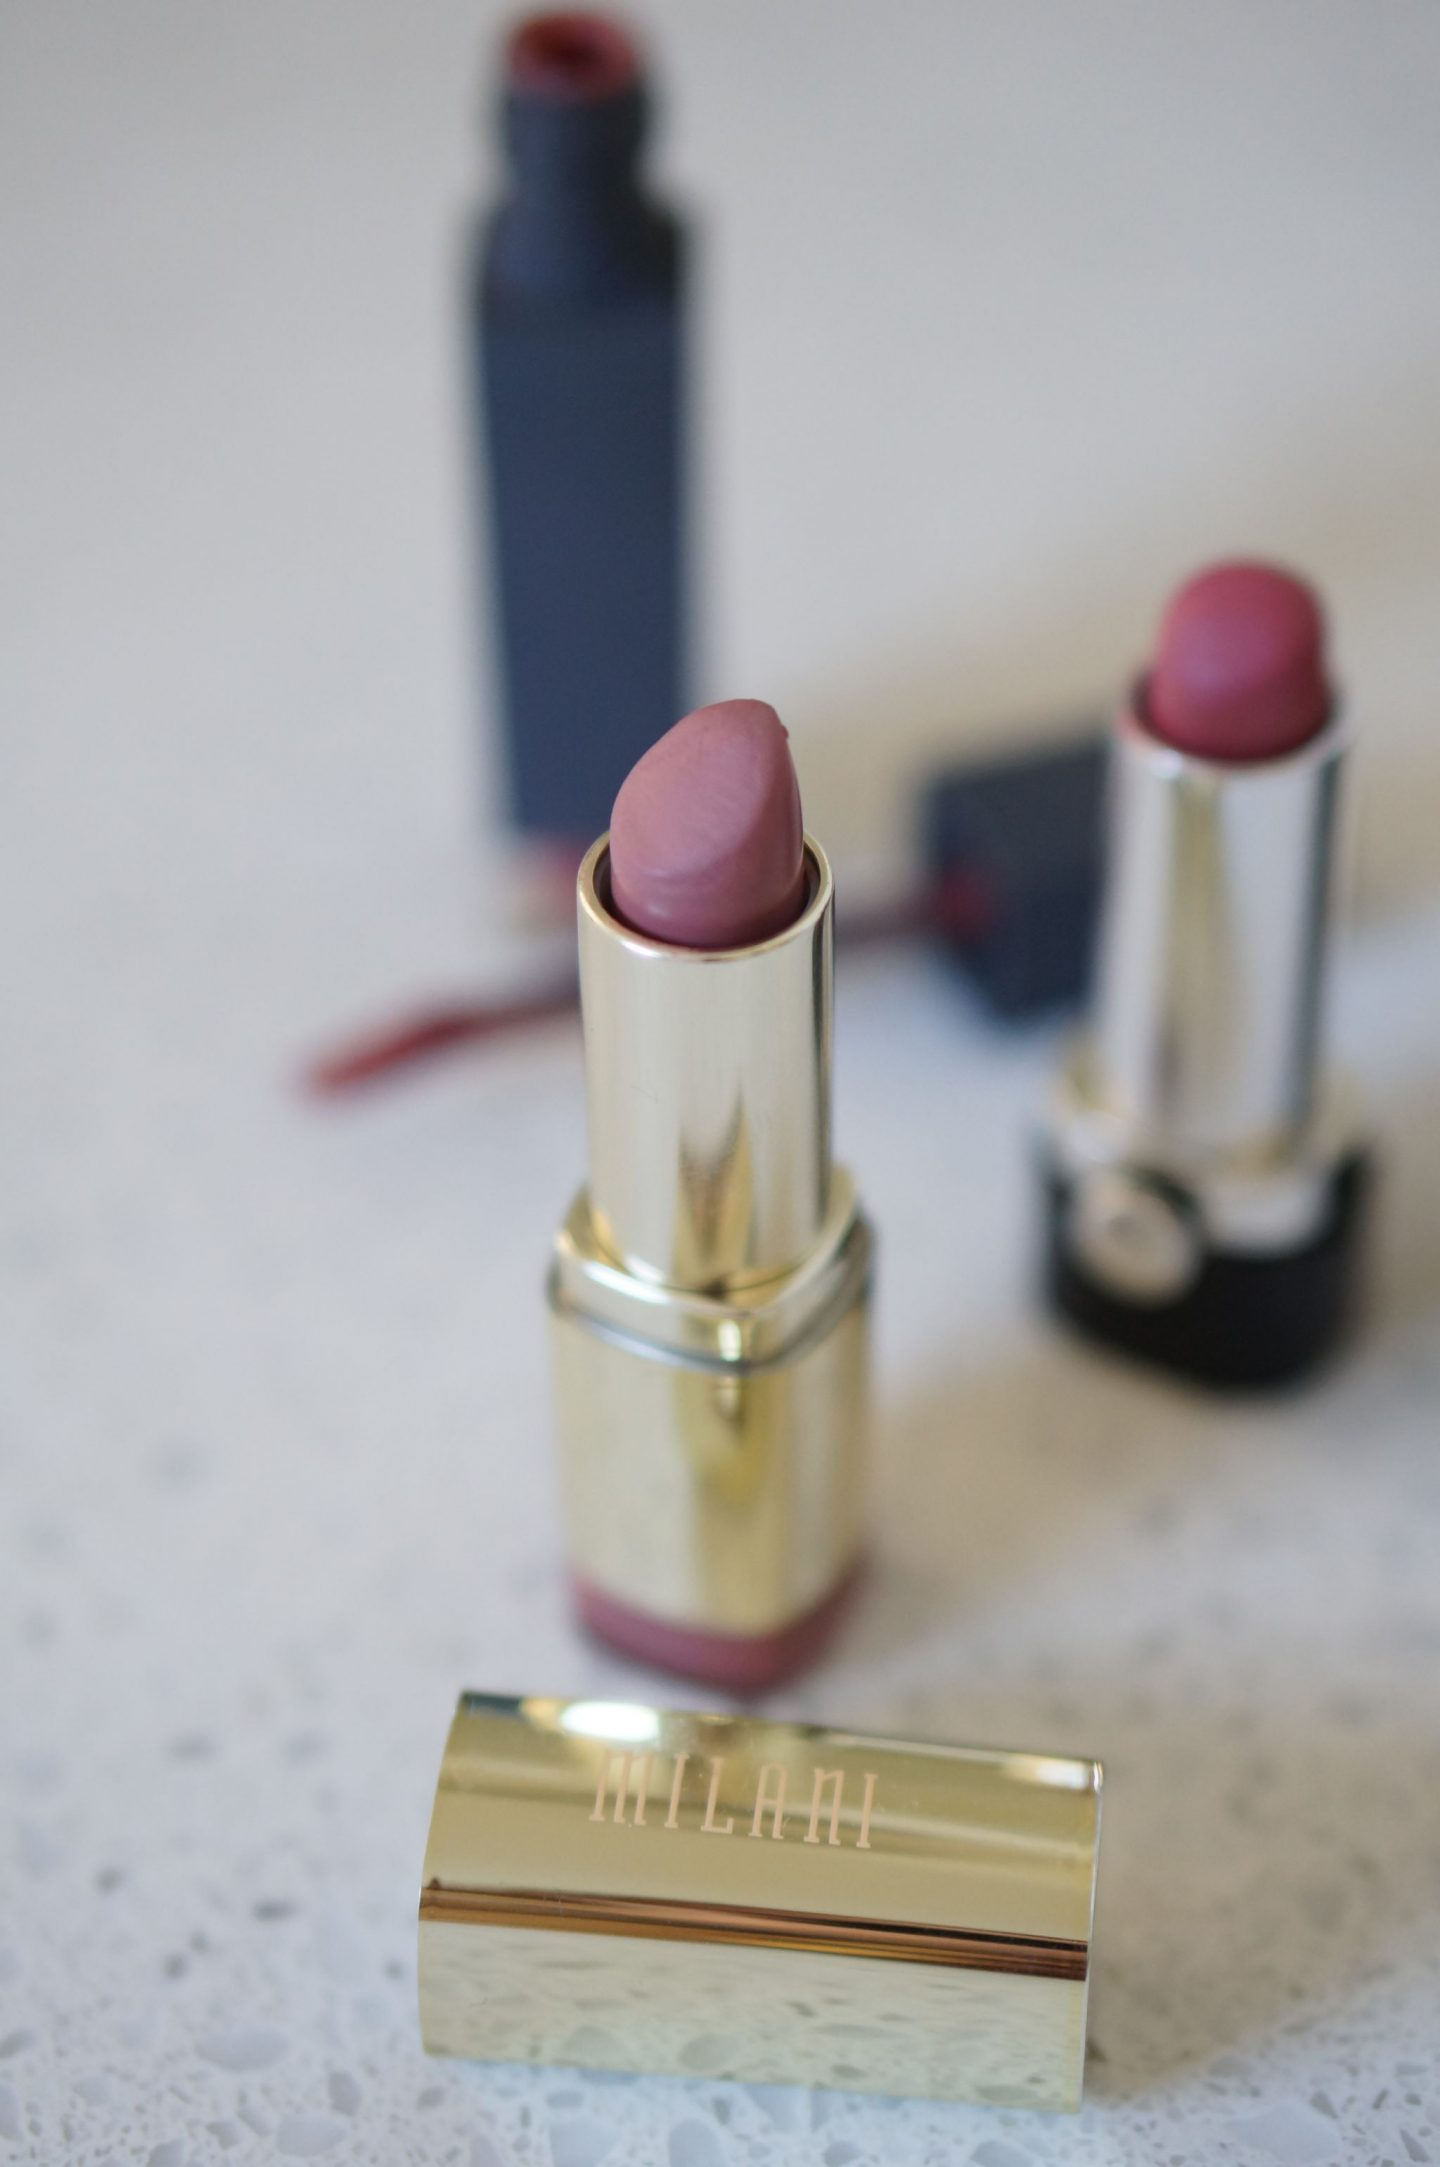 North Carolina style blogger Rebecca Lately shares her go-to nude lipsticks. If you want a nude lip without looking like a zombie, check this out!